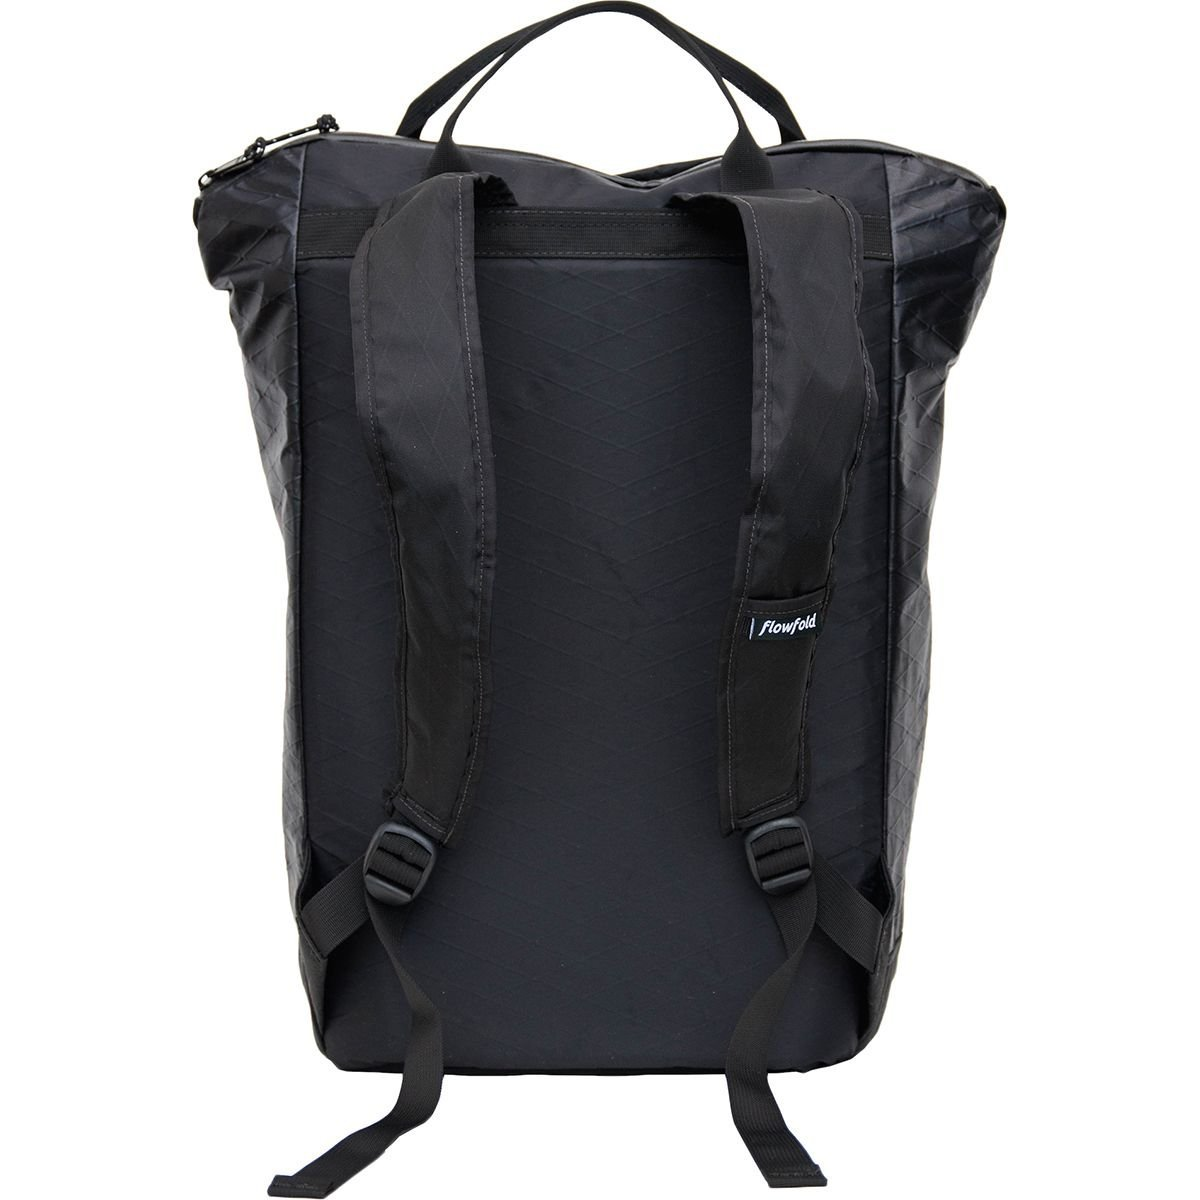 Amazon.com  Flowfold Denizen 18L Commuter Backpack - Ultra Light Laptop  Pack - Water Repellent - Urban to Outdoor - Made in USA - Olive  Flowfold cef235098